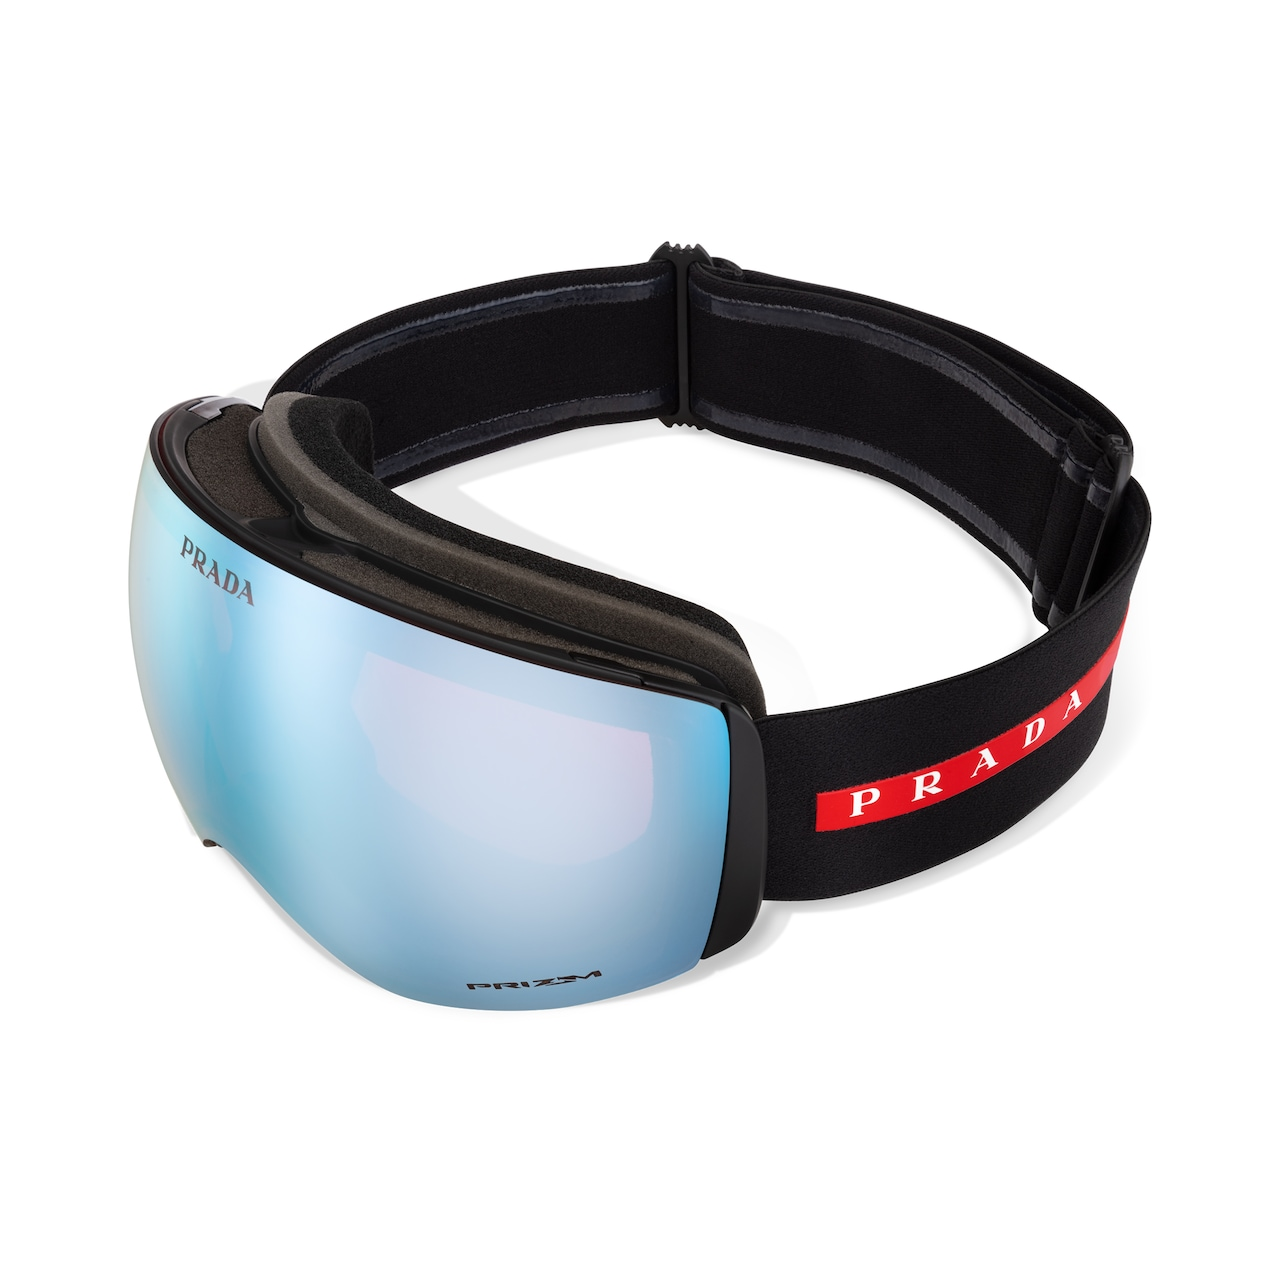 Prada Linea Rossa for Oakley snow goggle 6